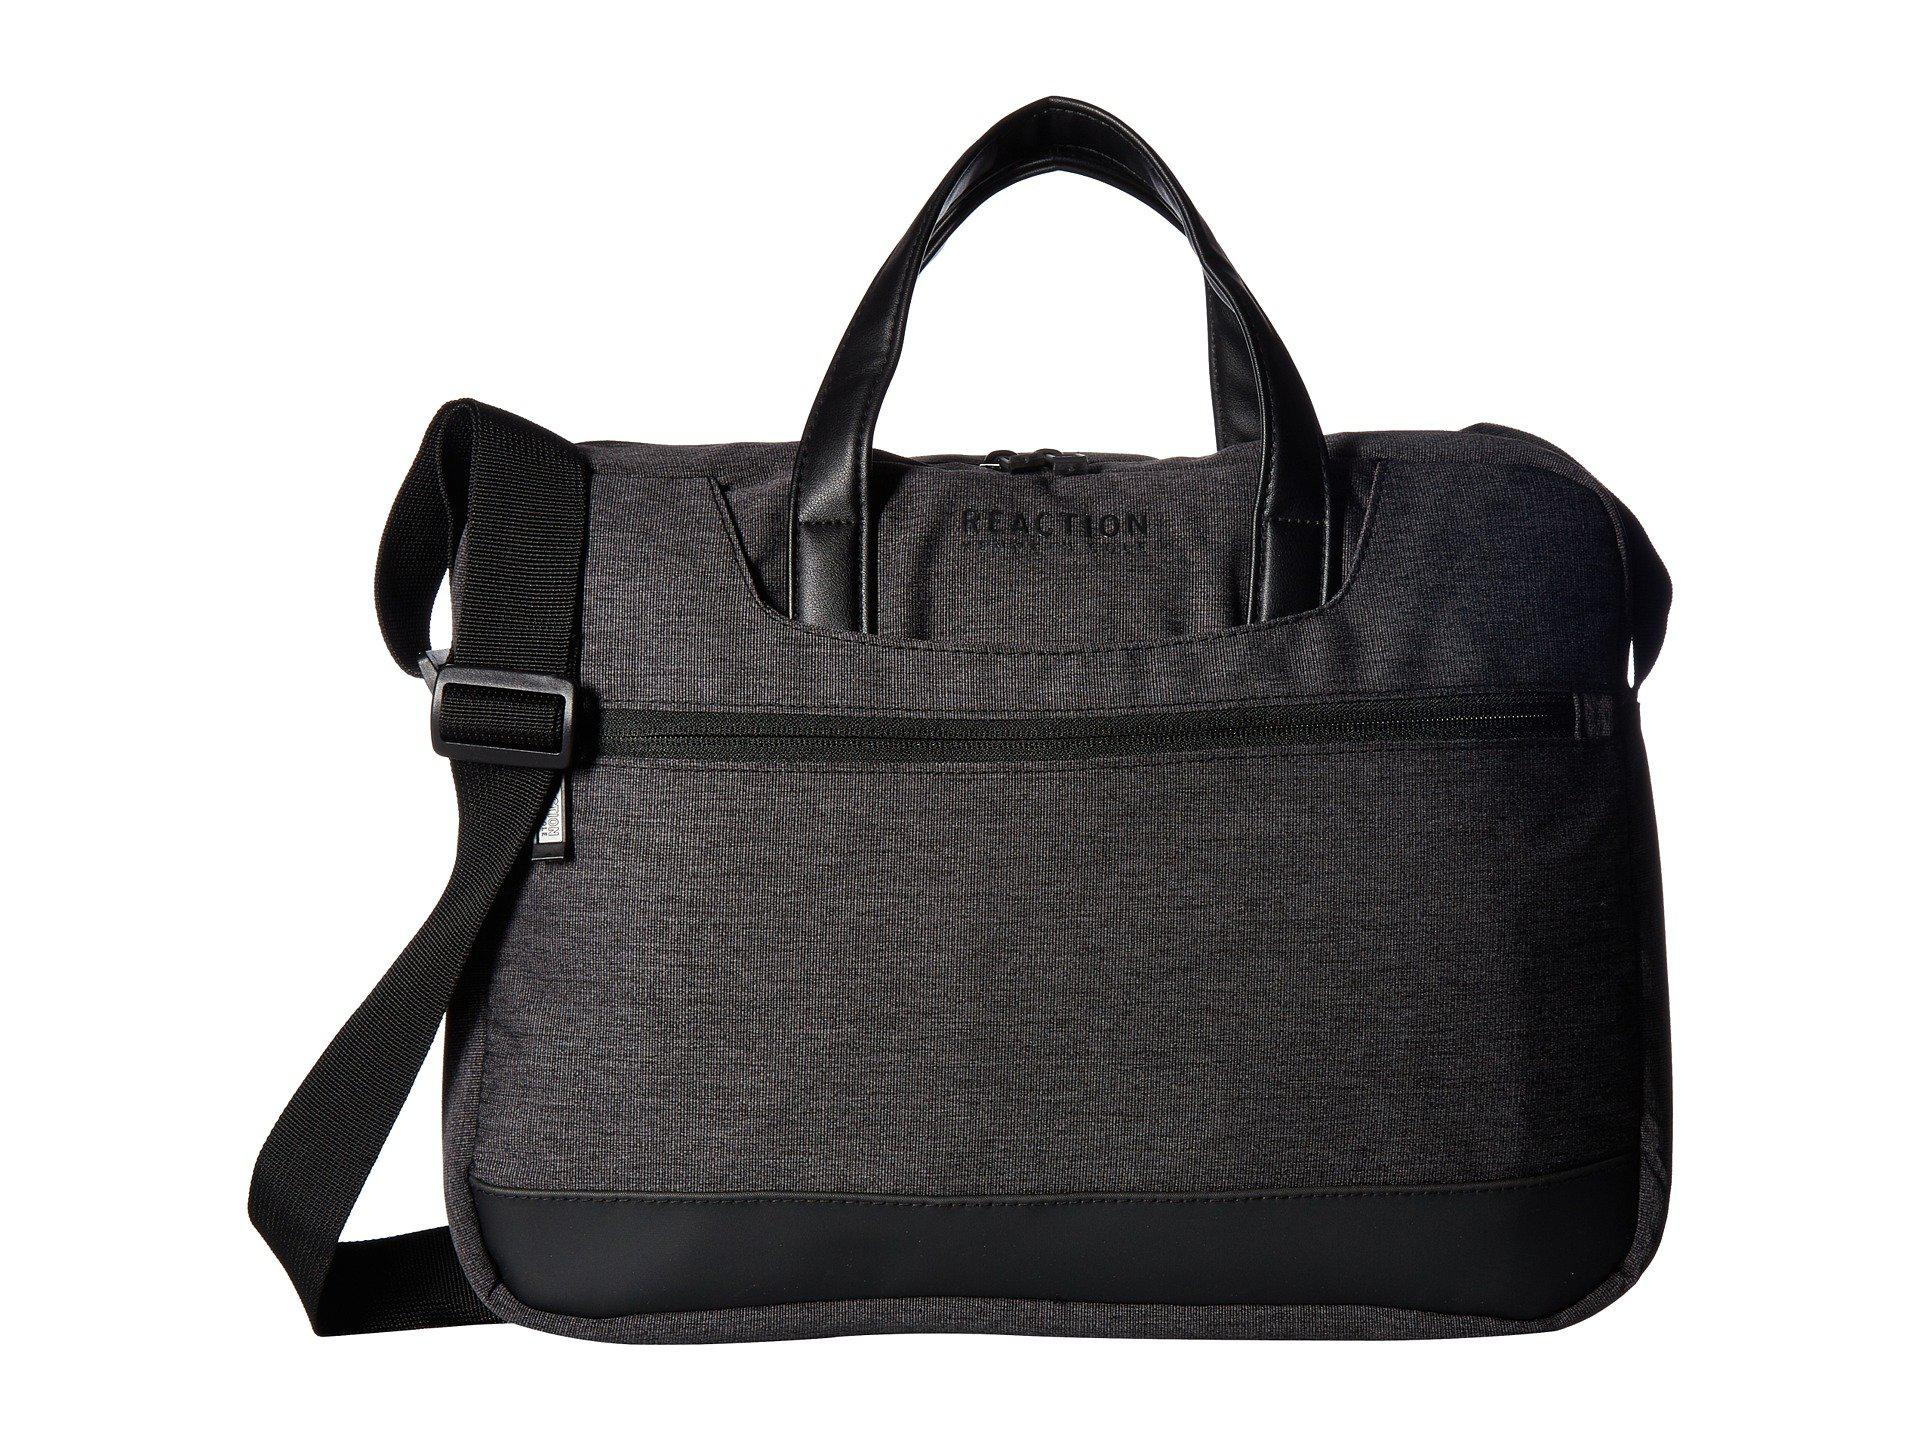 53d2653bf Lyst - Kenneth Cole Reaction Outlander - 15.0 Computer Portfolio ...